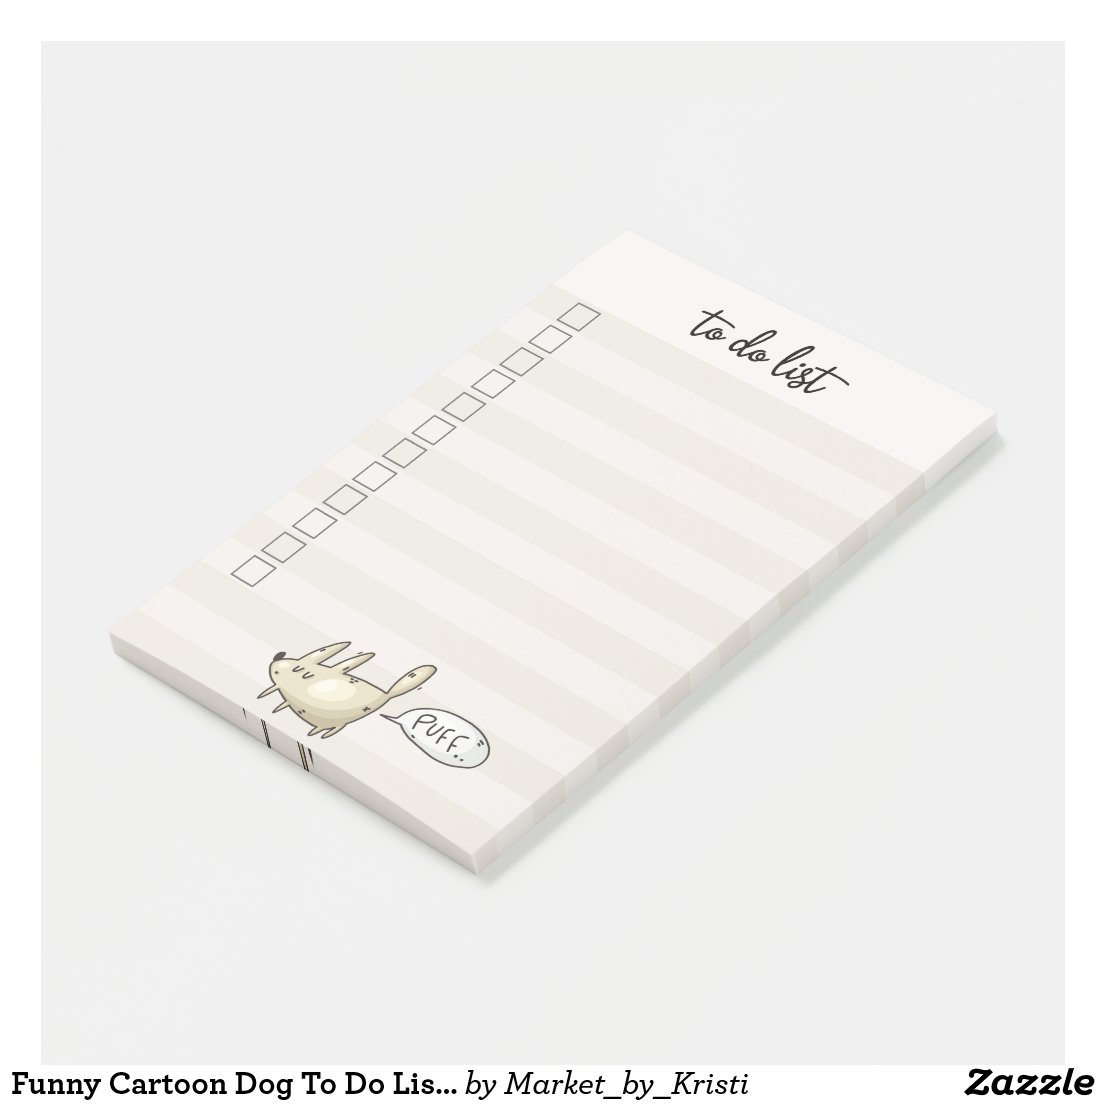 Funny Cartoon Dog To Do List Office Humor Gift Post-it Notes